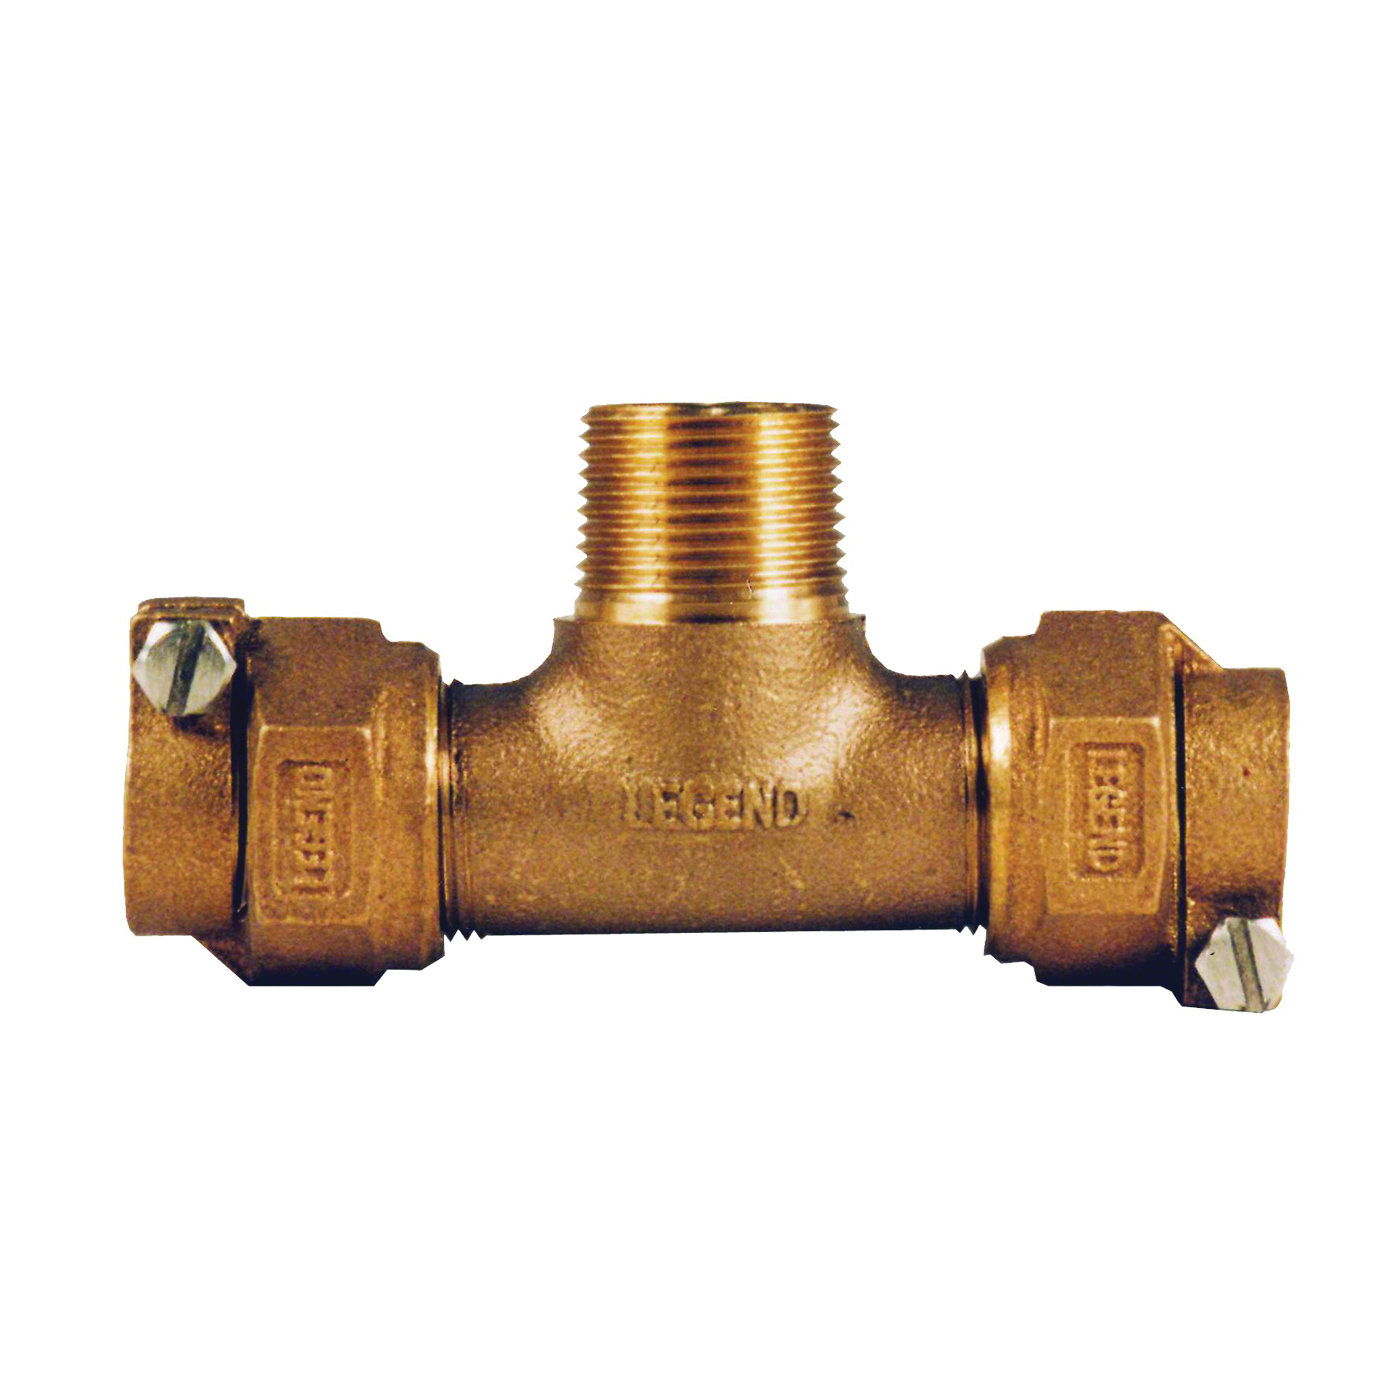 Picture of Legend T-4440NL 313-384NL Pipe Tee, 3/4 in, Pack Joint x MNPT, Bronze, 100 psi Pressure